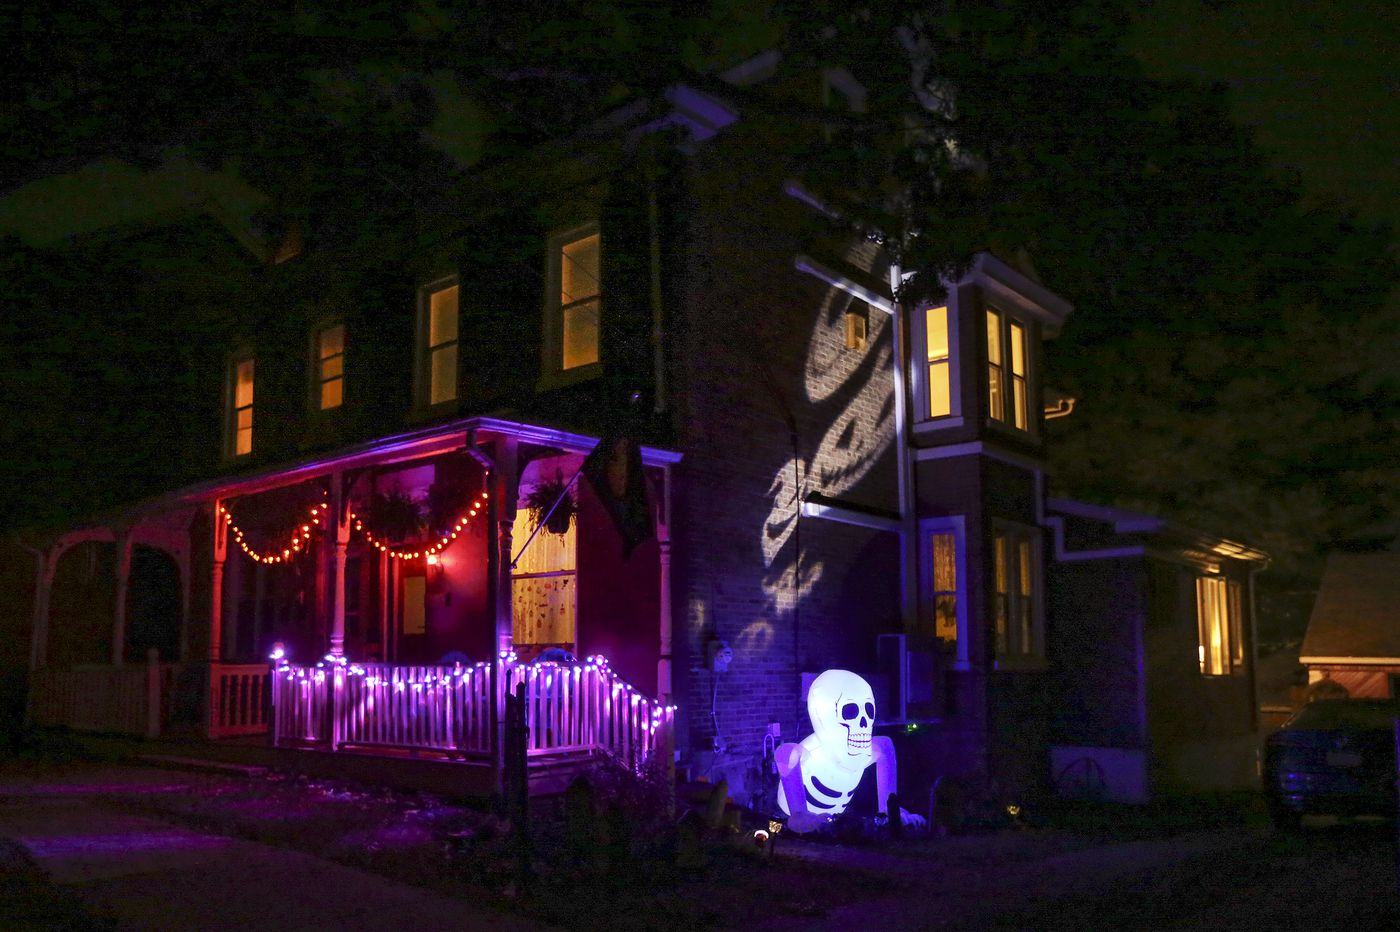 Phoenixville Halloween Parties 2020 For Halloween 2020, trick or treating in Pa. and N.J. is up to parents